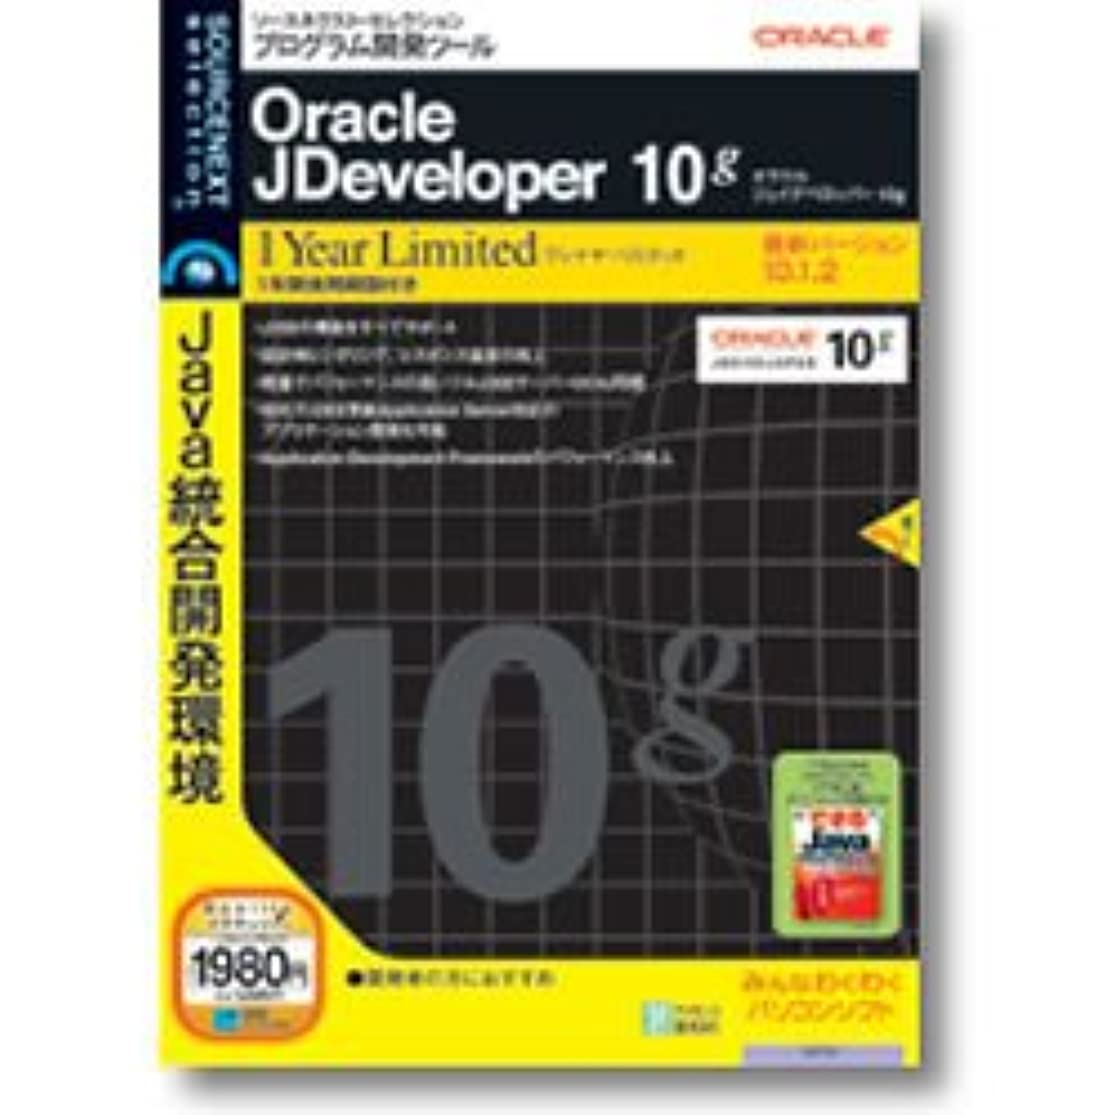 Oracle JDeveloper 10g 1Year Limited 最新版 10.1.2 (説明扉付きスリムパッケージ)